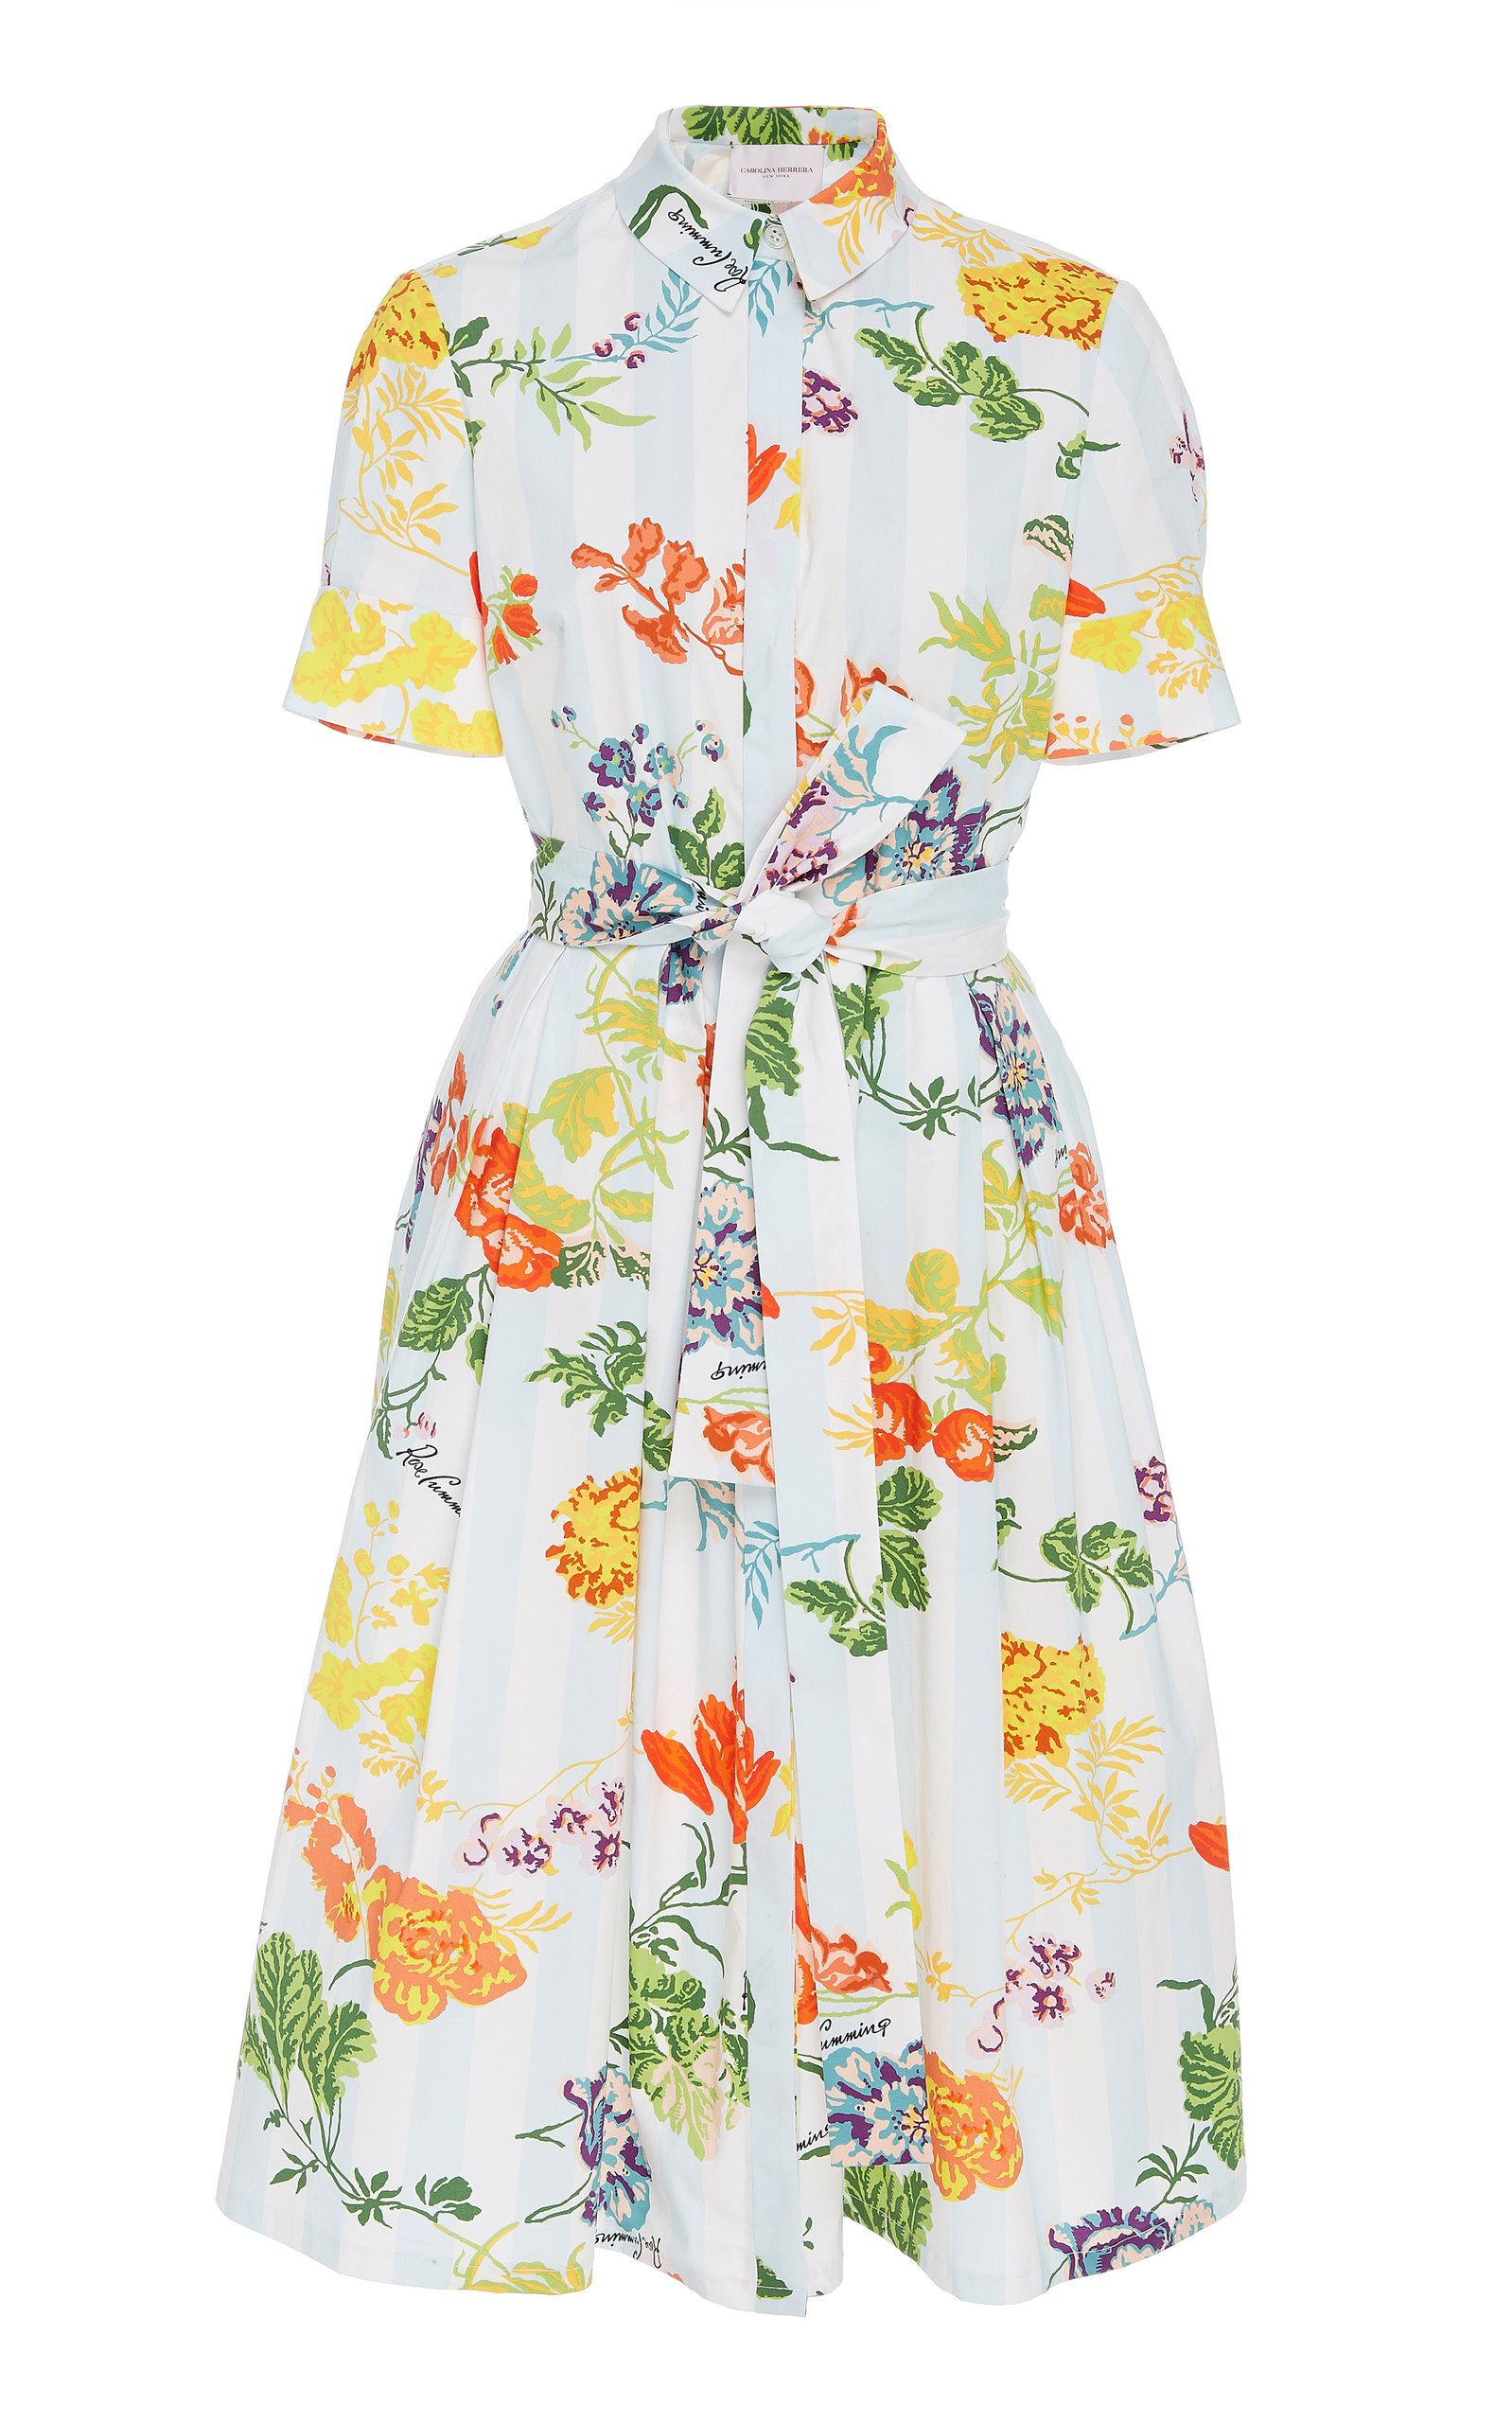 769d1052bc5 Carolina Herrera Floral-Print Belted Cotton-Blend Midi Shirt Dress ...